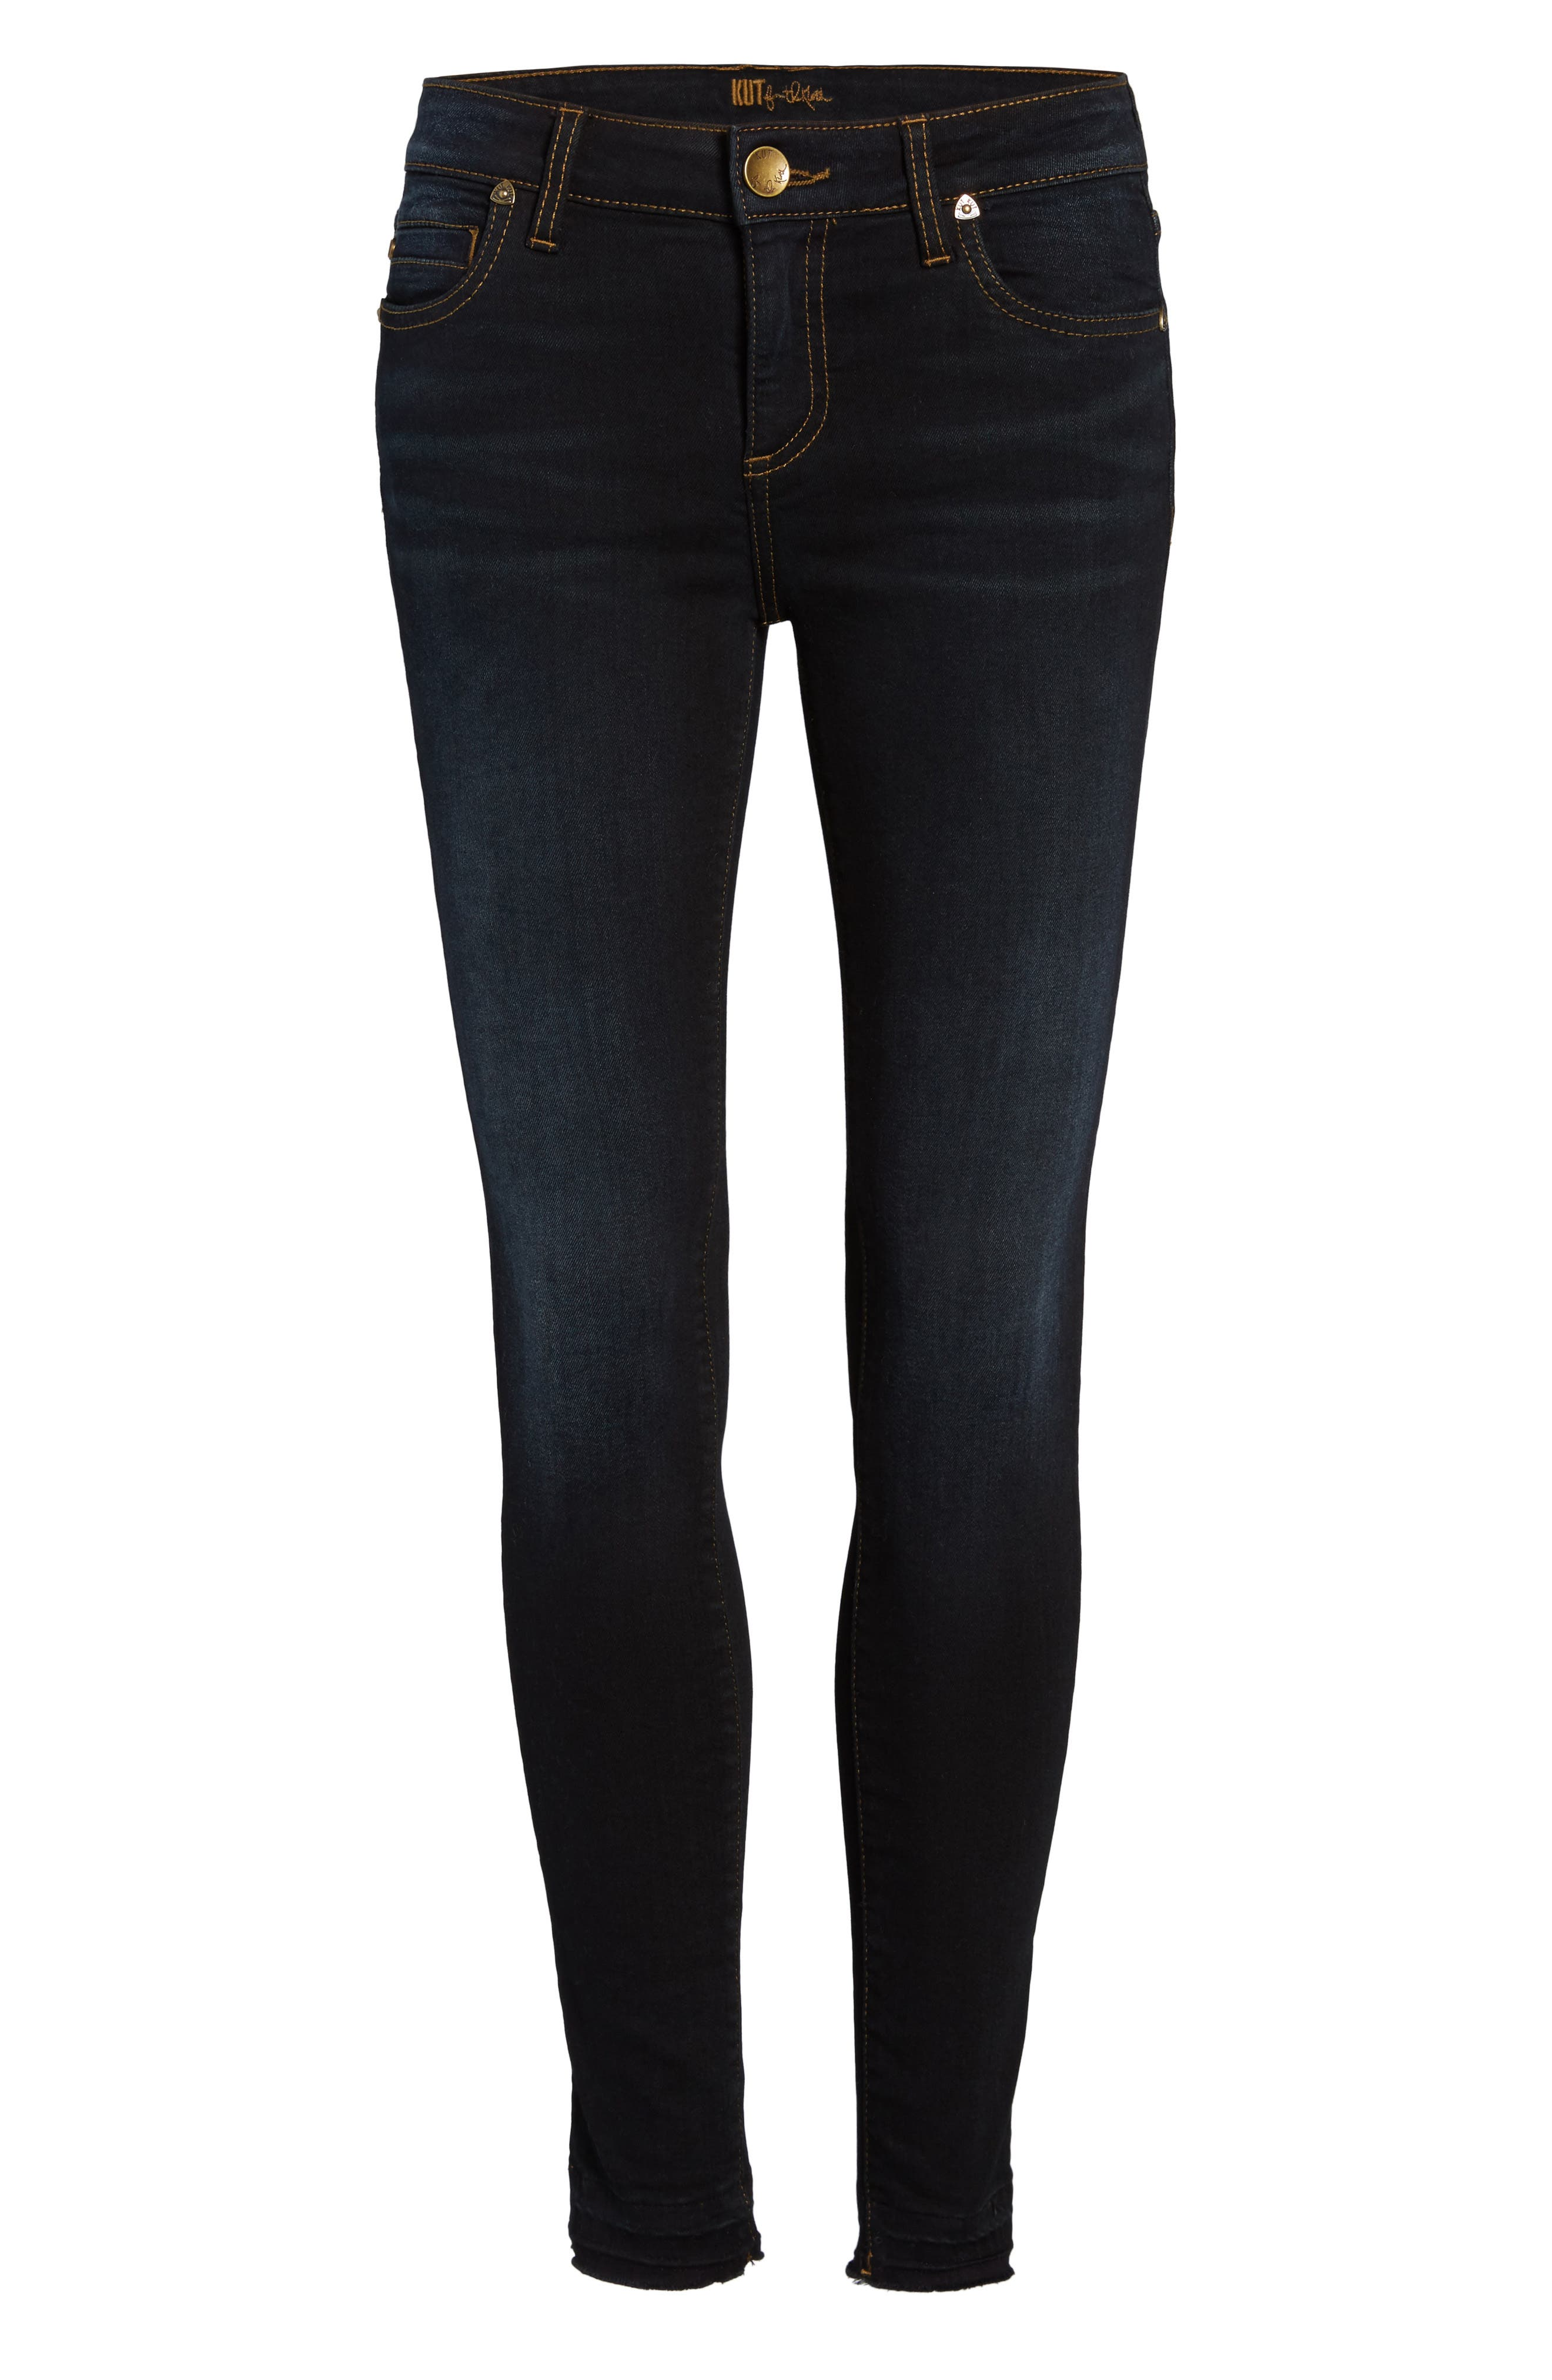 Connie Release Hem Skinny Jeans,                             Alternate thumbnail 6, color,                             476